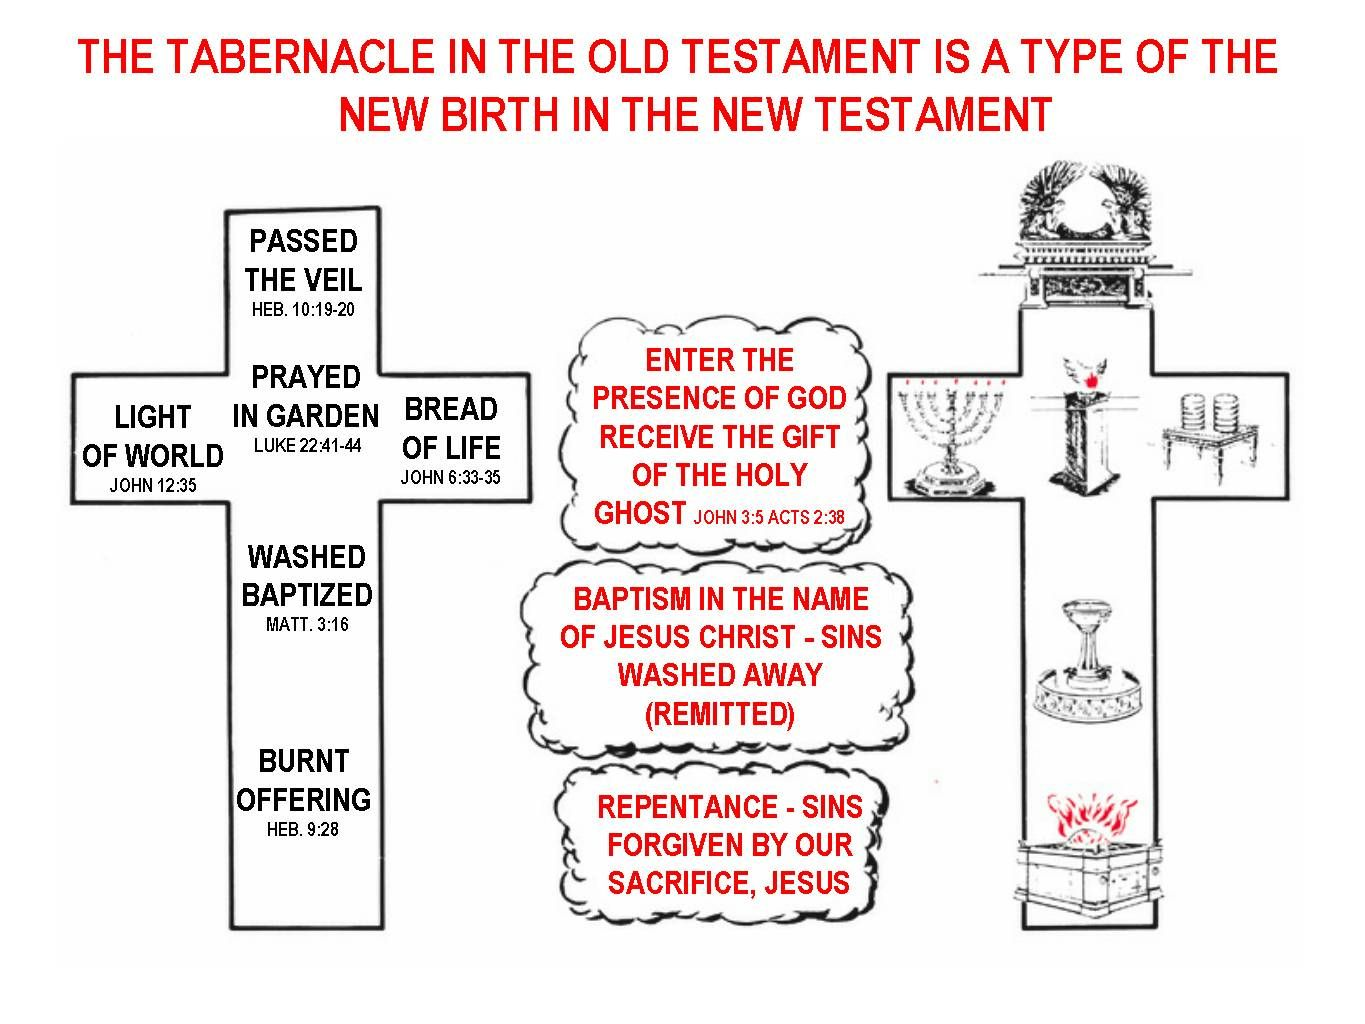 medium resolution of search for truth tabernacle in the old testament is a type of the new birth